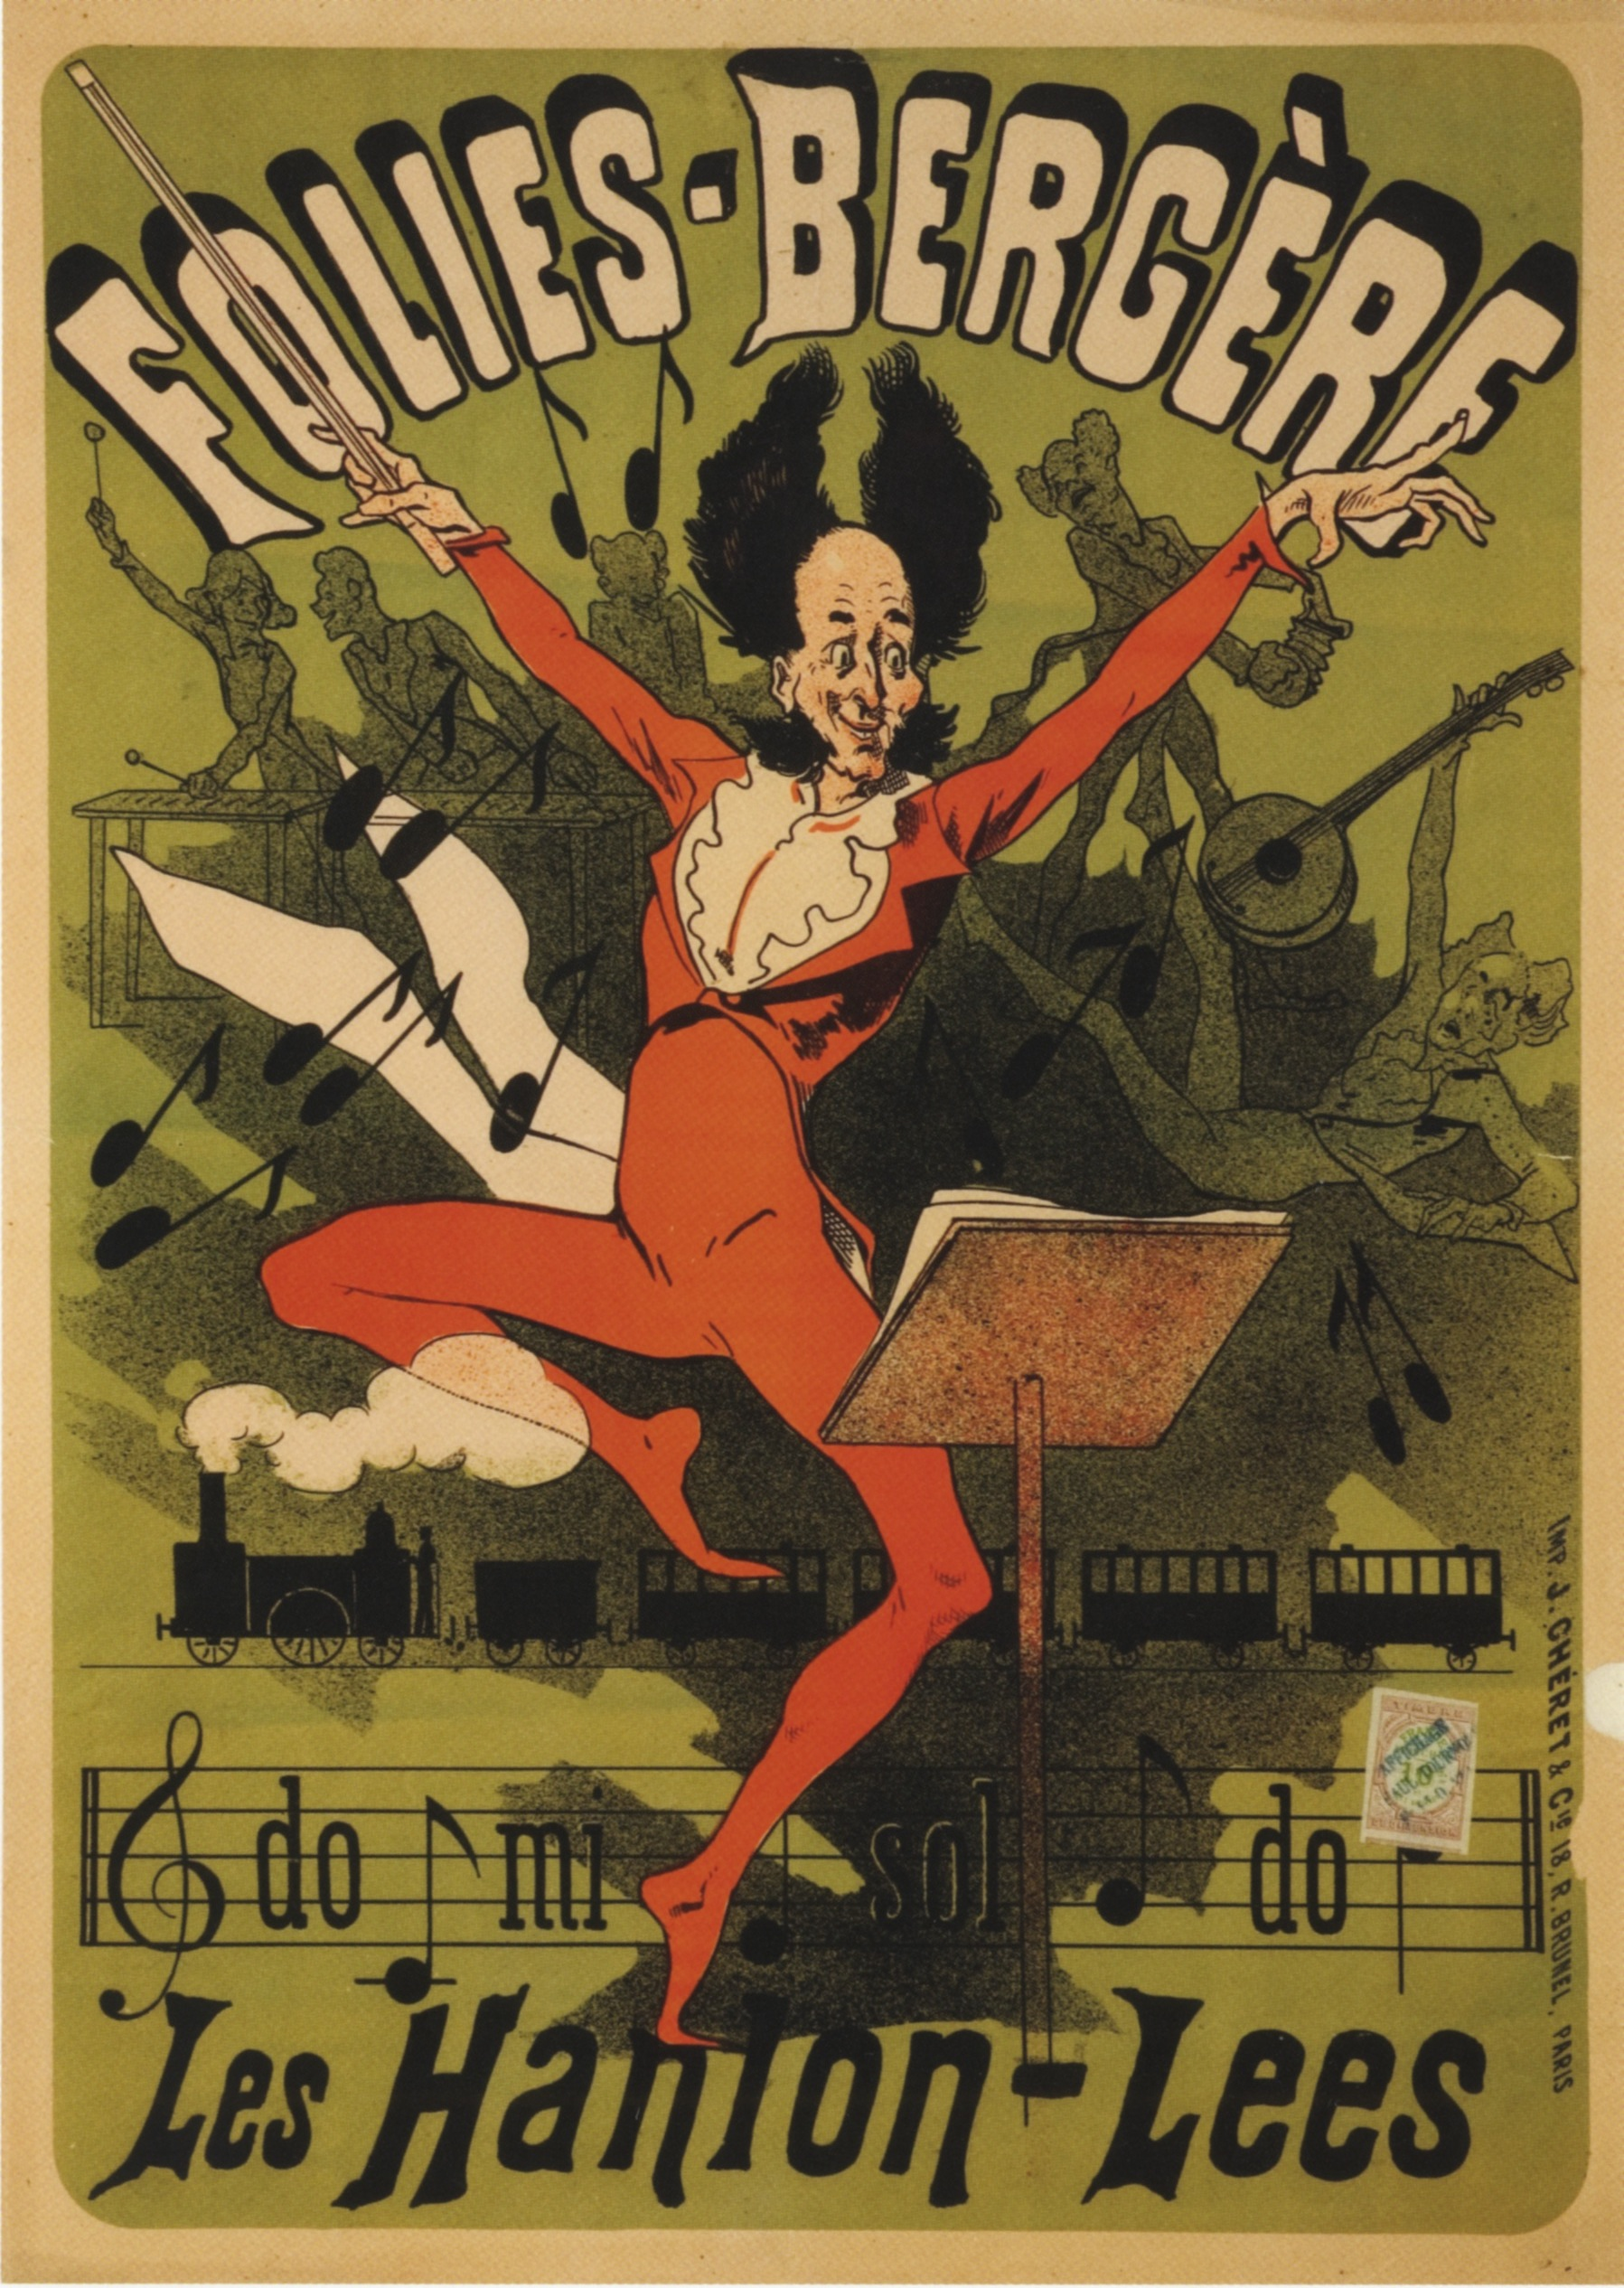 Jules Chéret,  Folies Bergere: Les Hanion-Lees , advertising poster, 1878. This project, earlier in Chértet's career, does not show the same atmospheric handling of color and light visible in the posters above, but manages nice modulation of value between the manic, highly-saturated central character and the figures behind him. Also nice use of negative form, notably the puff of locomotive smoke that crosses over his lower leg. Spatially quite sophisticated.